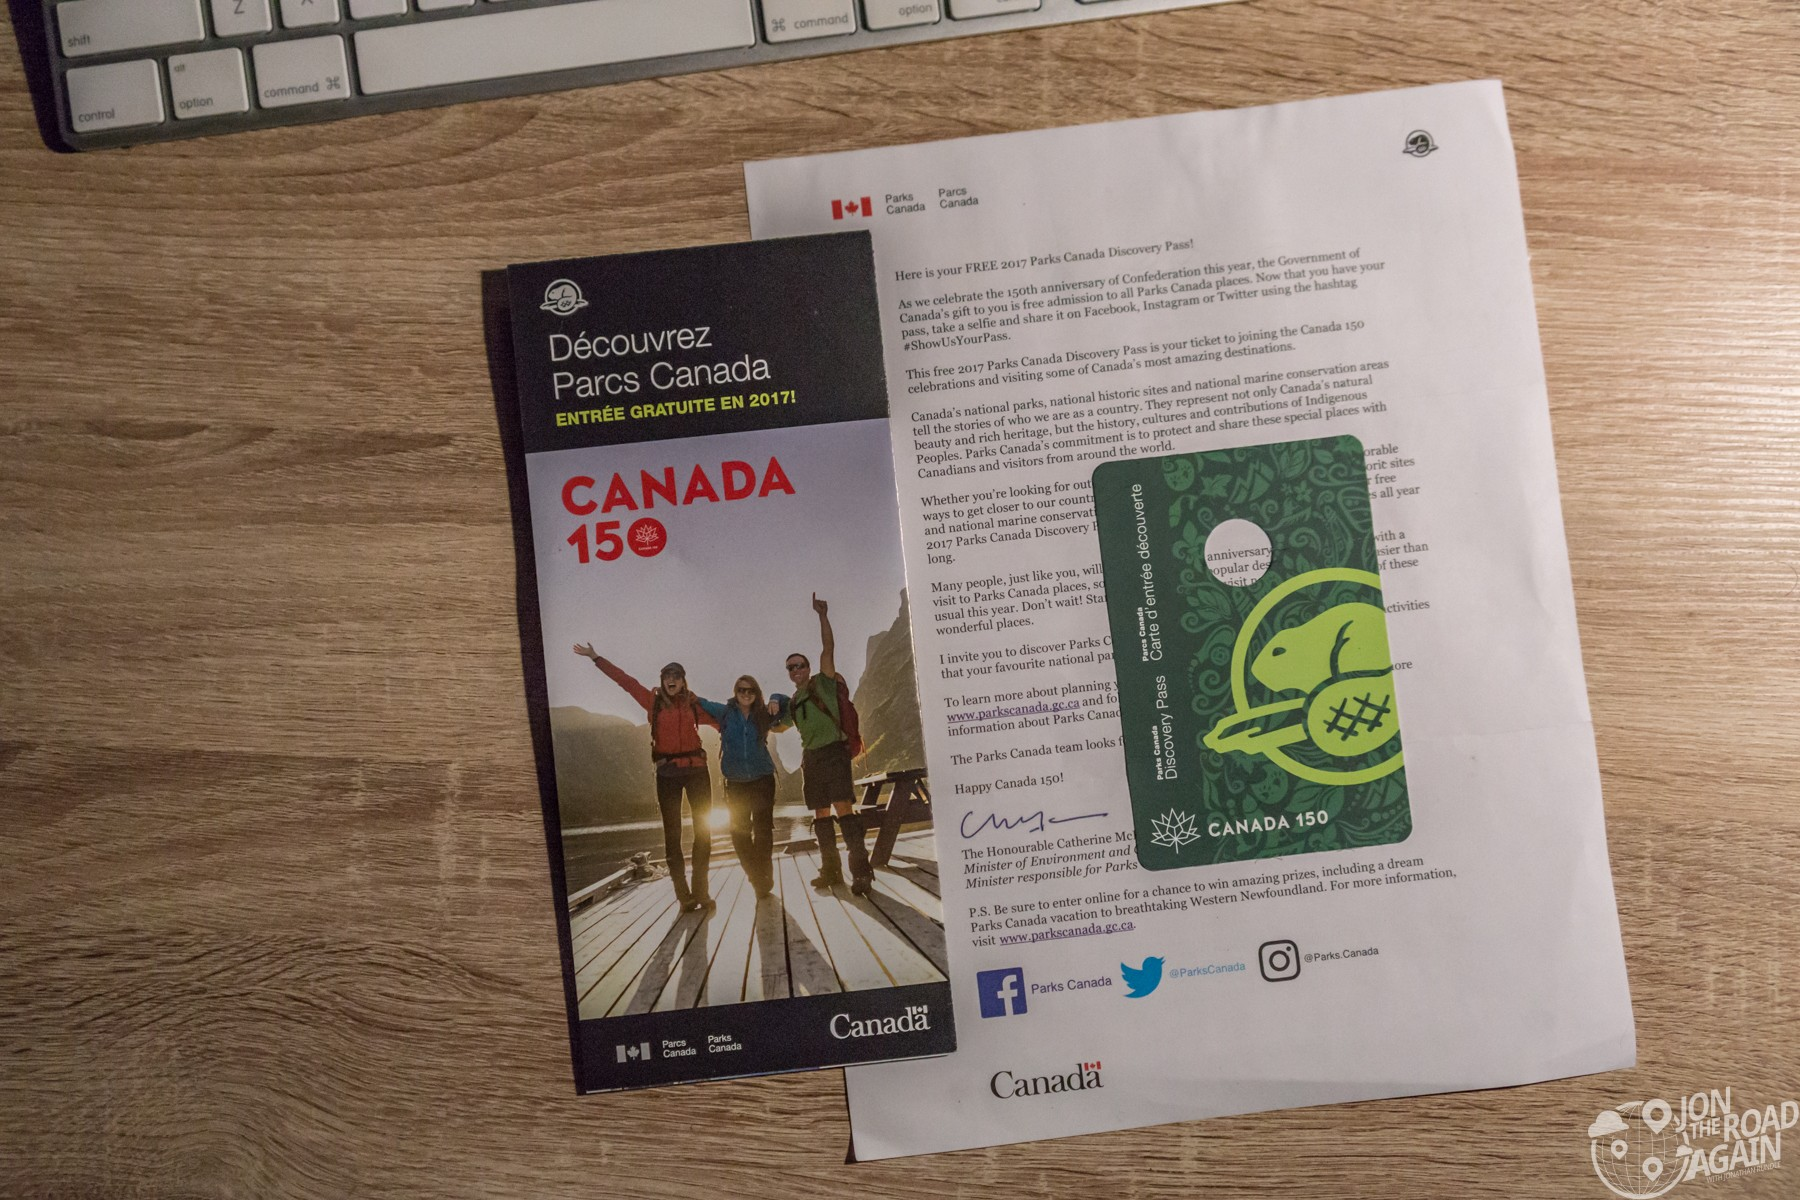 Free Parks Canada Pass